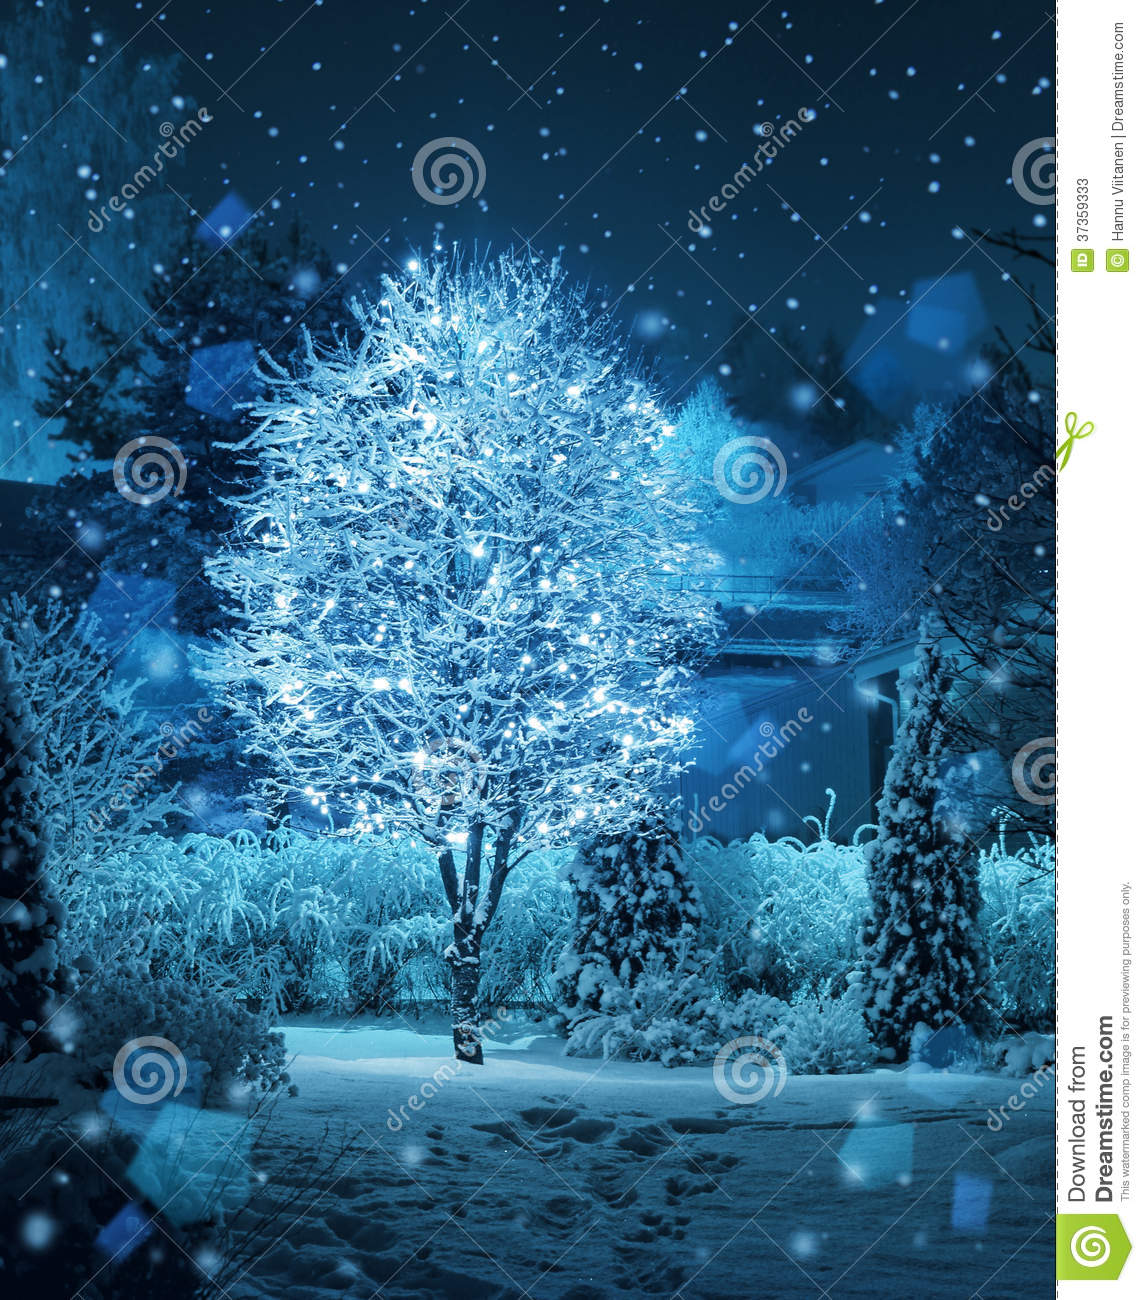 royalty free stock photo - Snowfall Christmas Lights